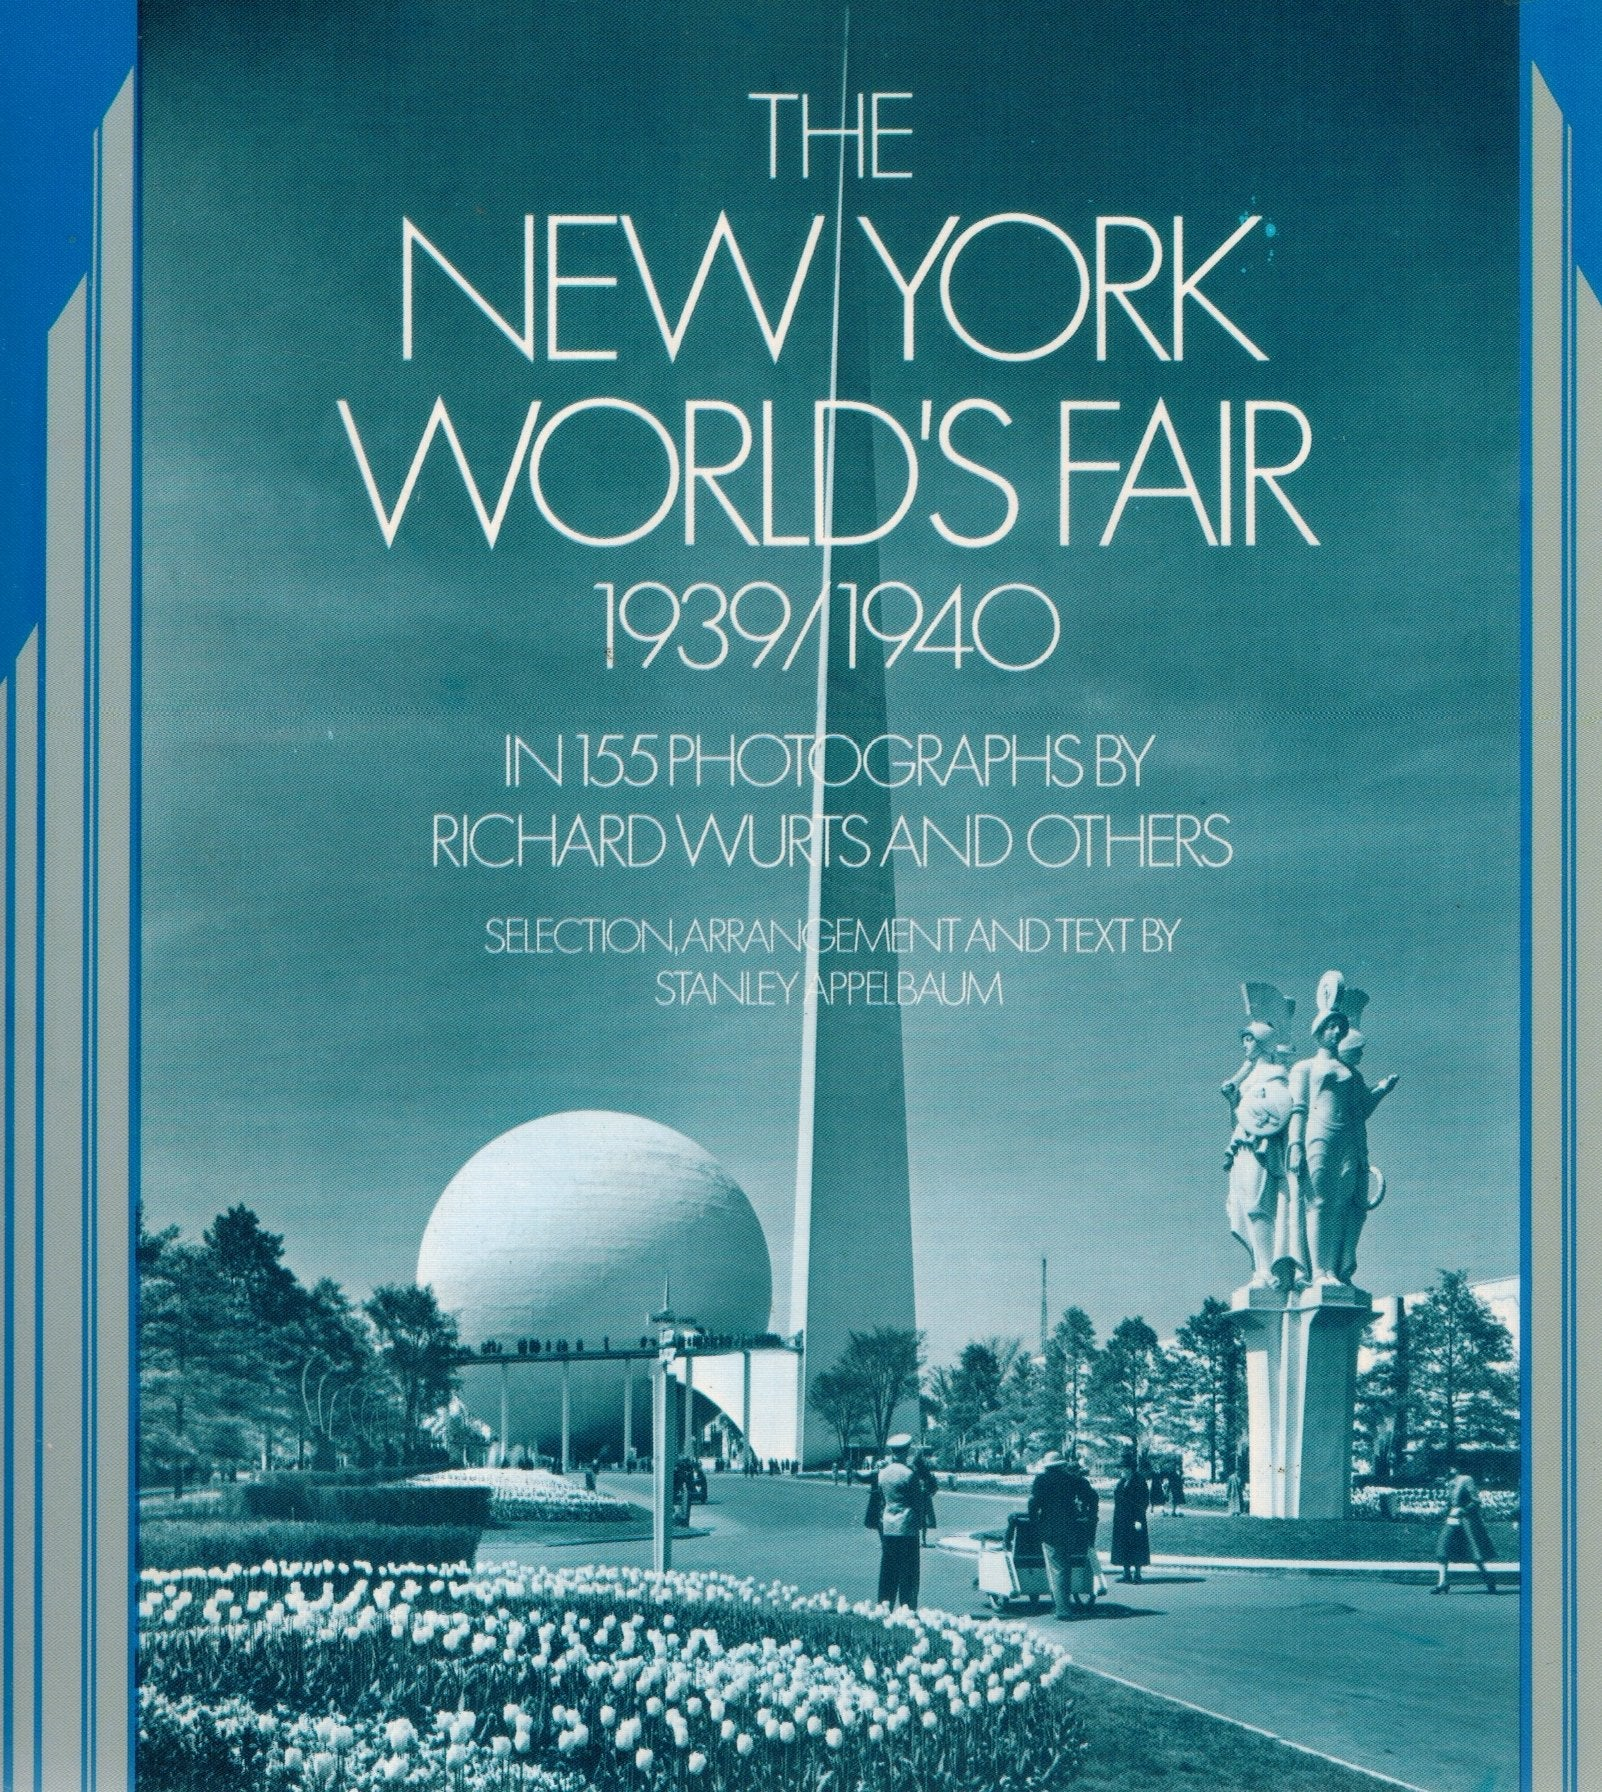 THE NEW YORK WORLD'S FAIR, 1939/1940  in 155 Photographs by Richard Wurts  and Others - books-new